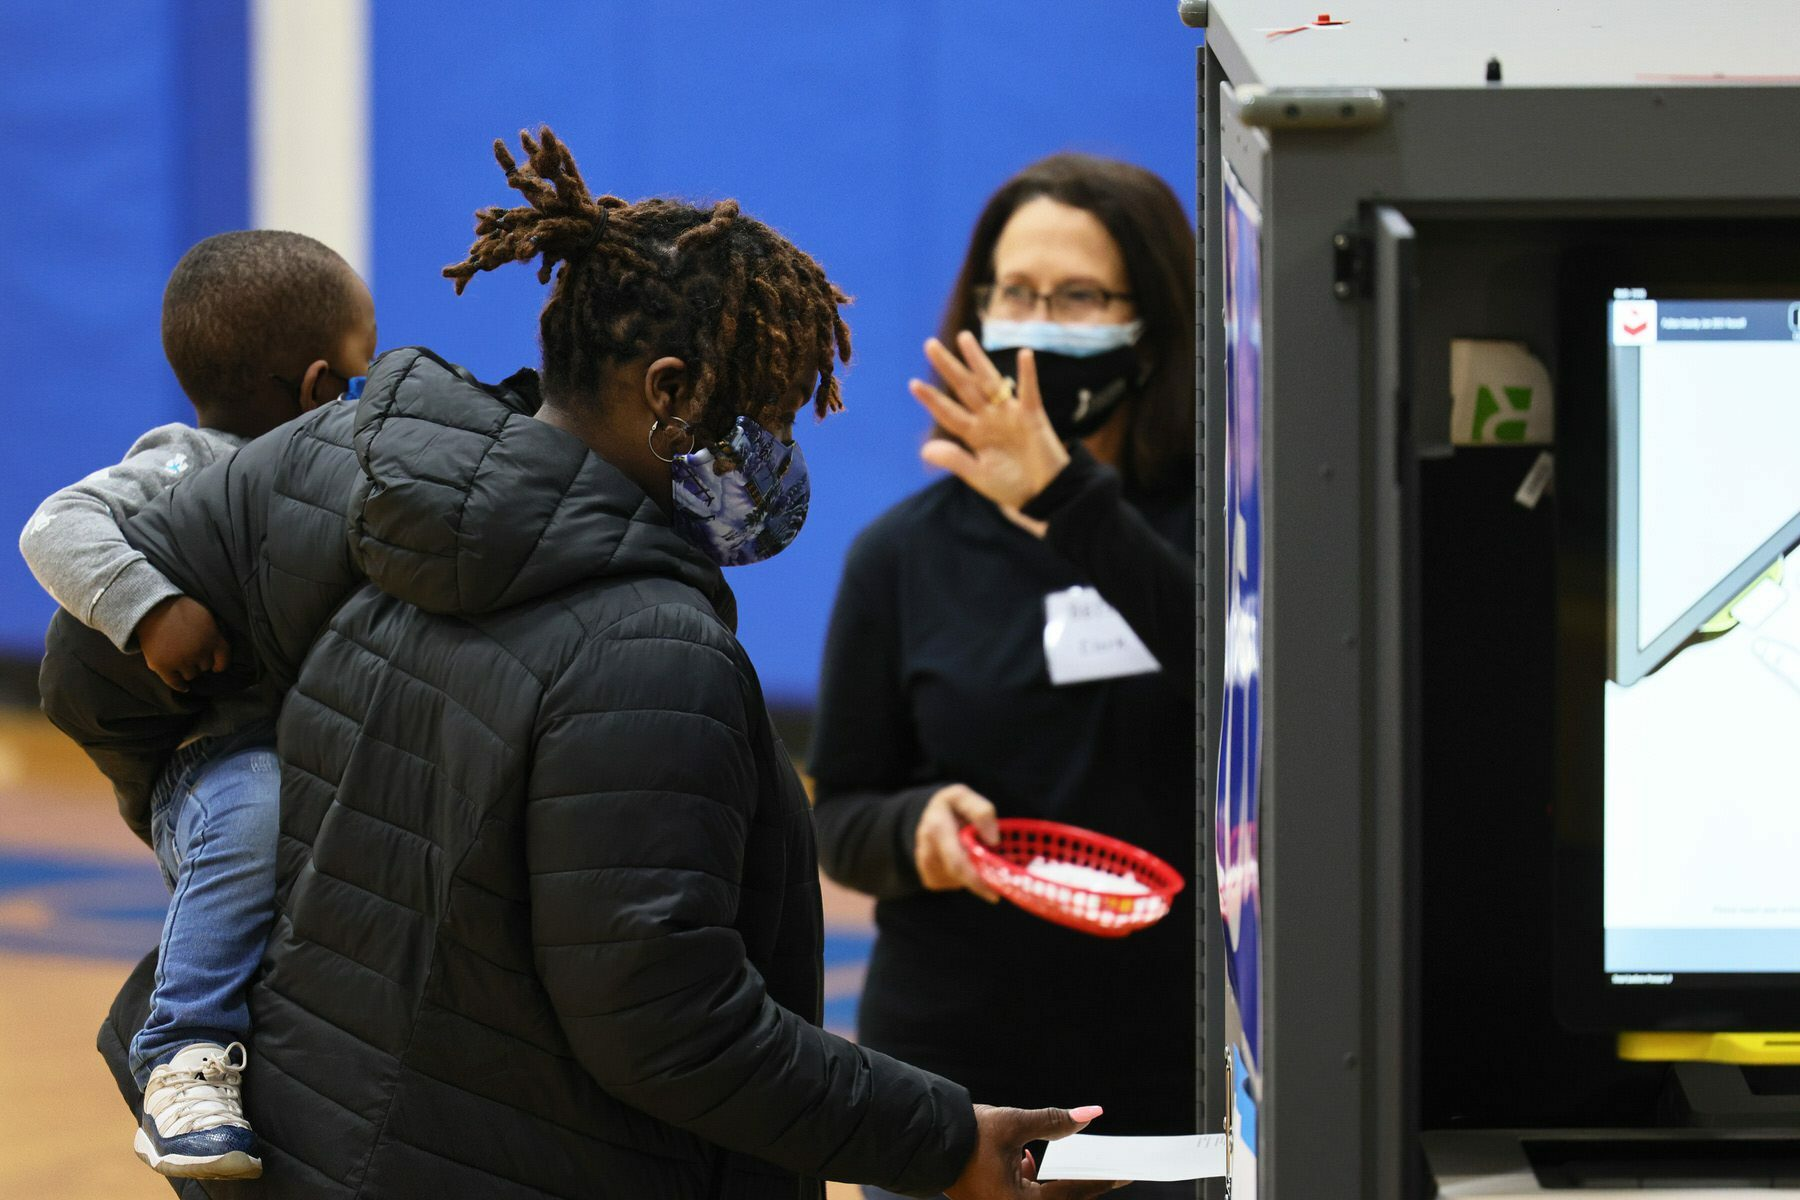 A woman holding a young child casts her vote in the Georgia run-off election at Dunbar Neighborhood Center.